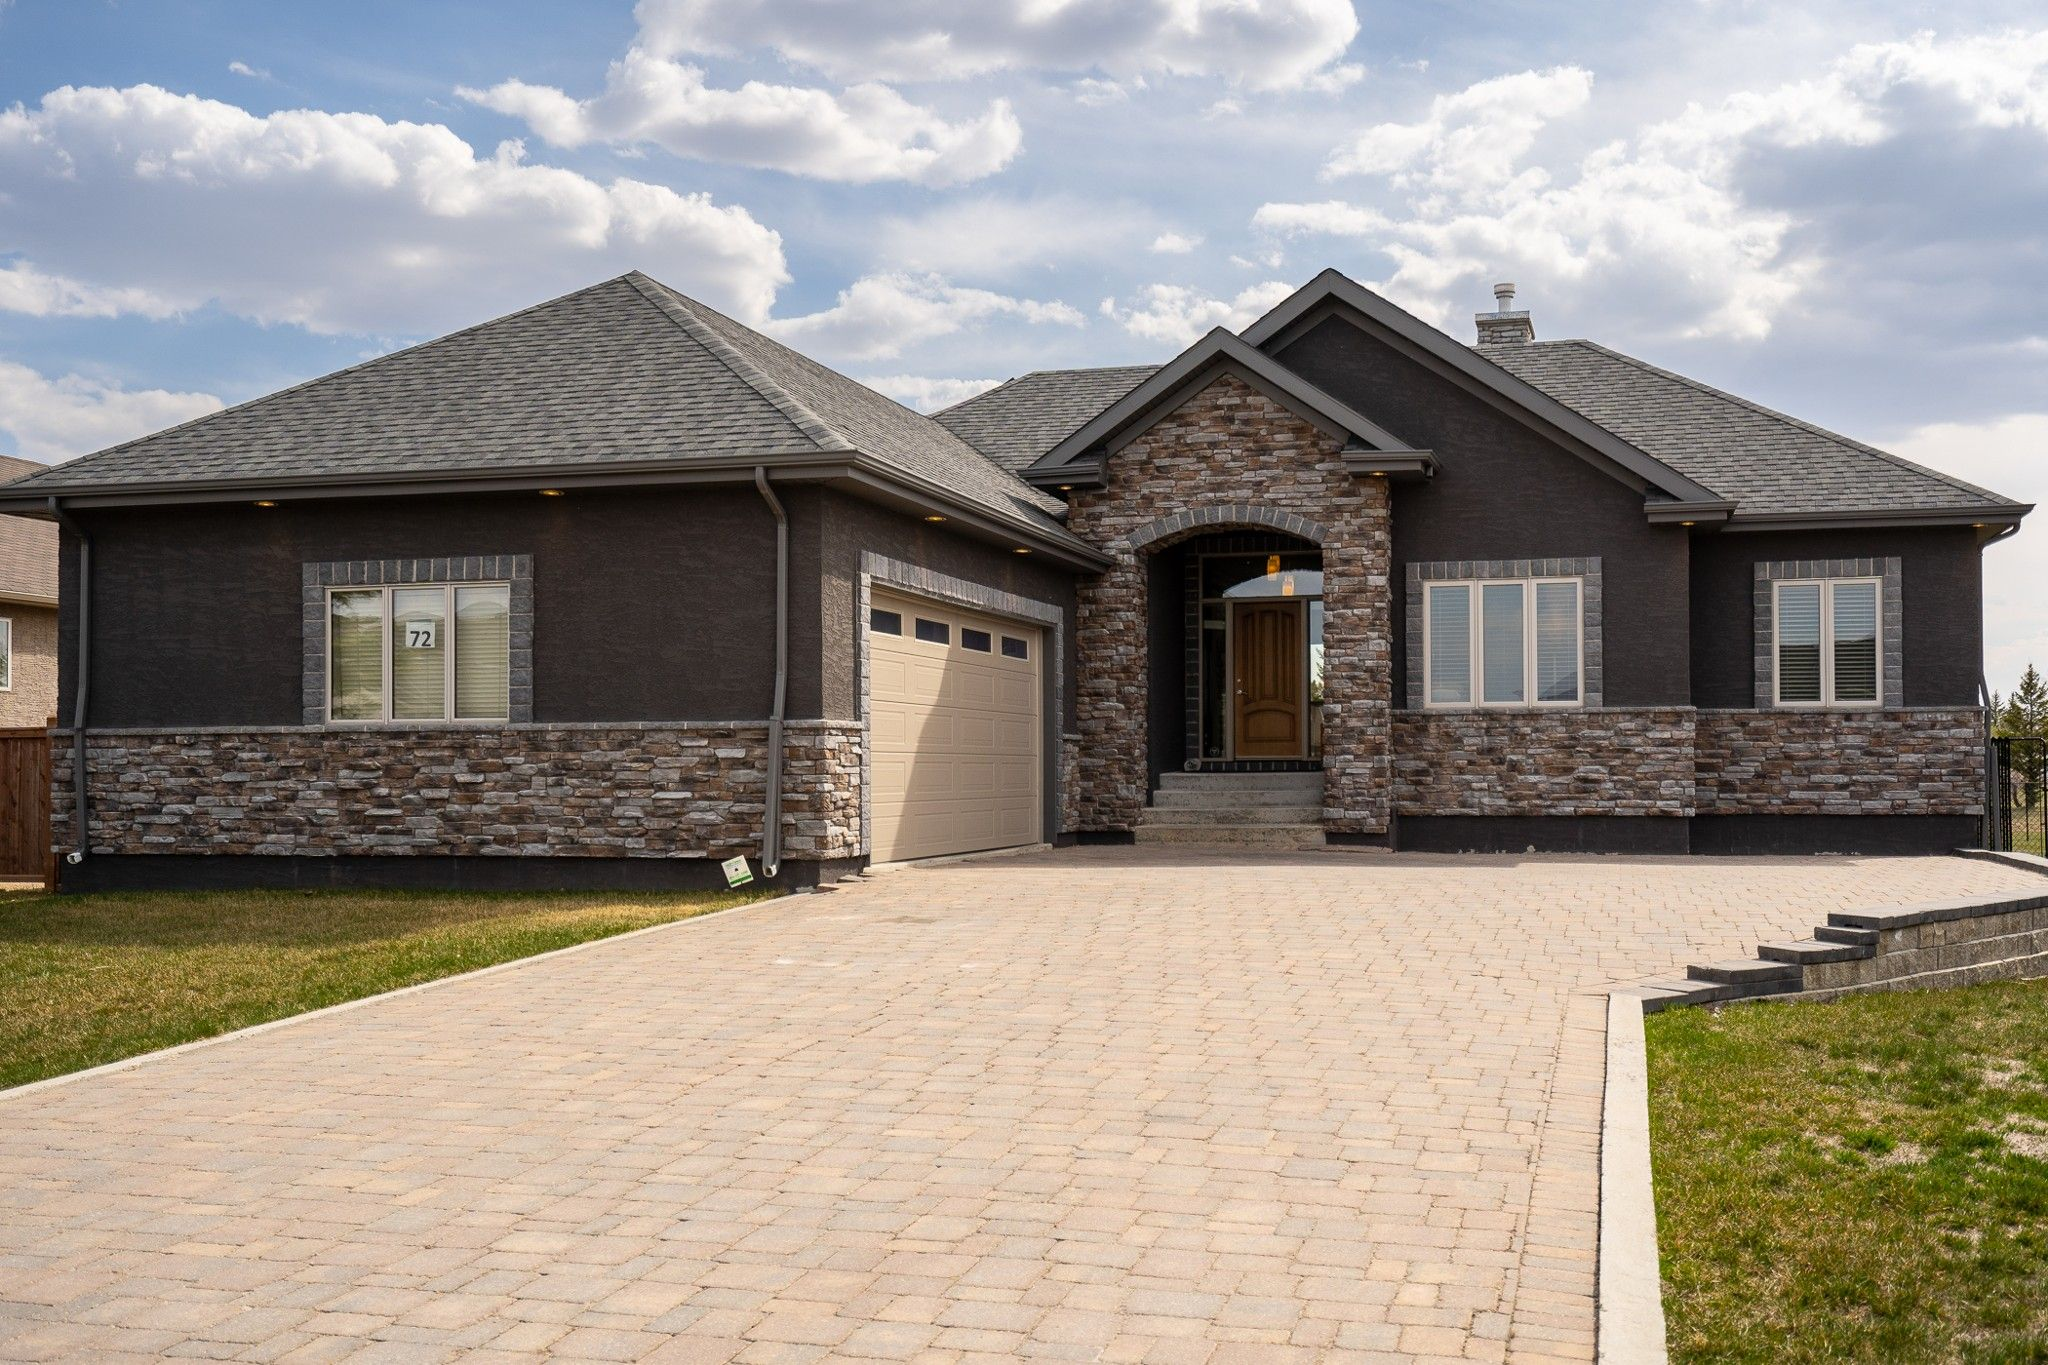 Main Photo: 72 Settler's Trail in Lorette: Serenity Trails House for sale (R05)  : MLS®# 202111518